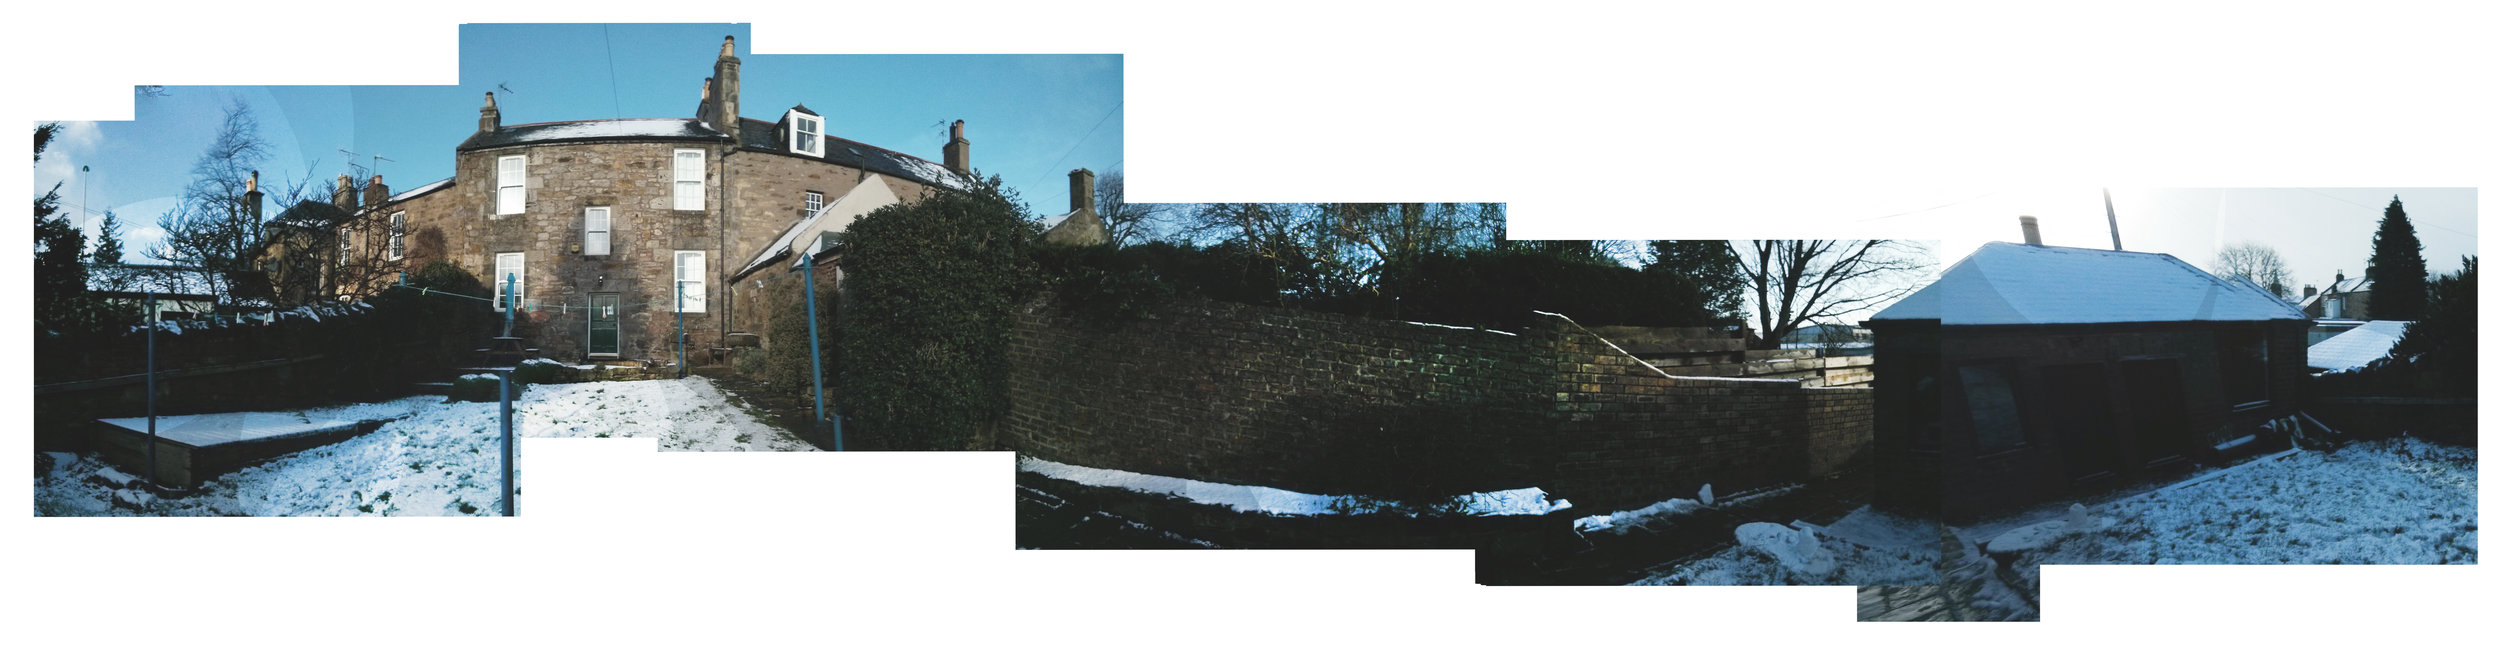 Linking Levels House Extension Panorama.jpg